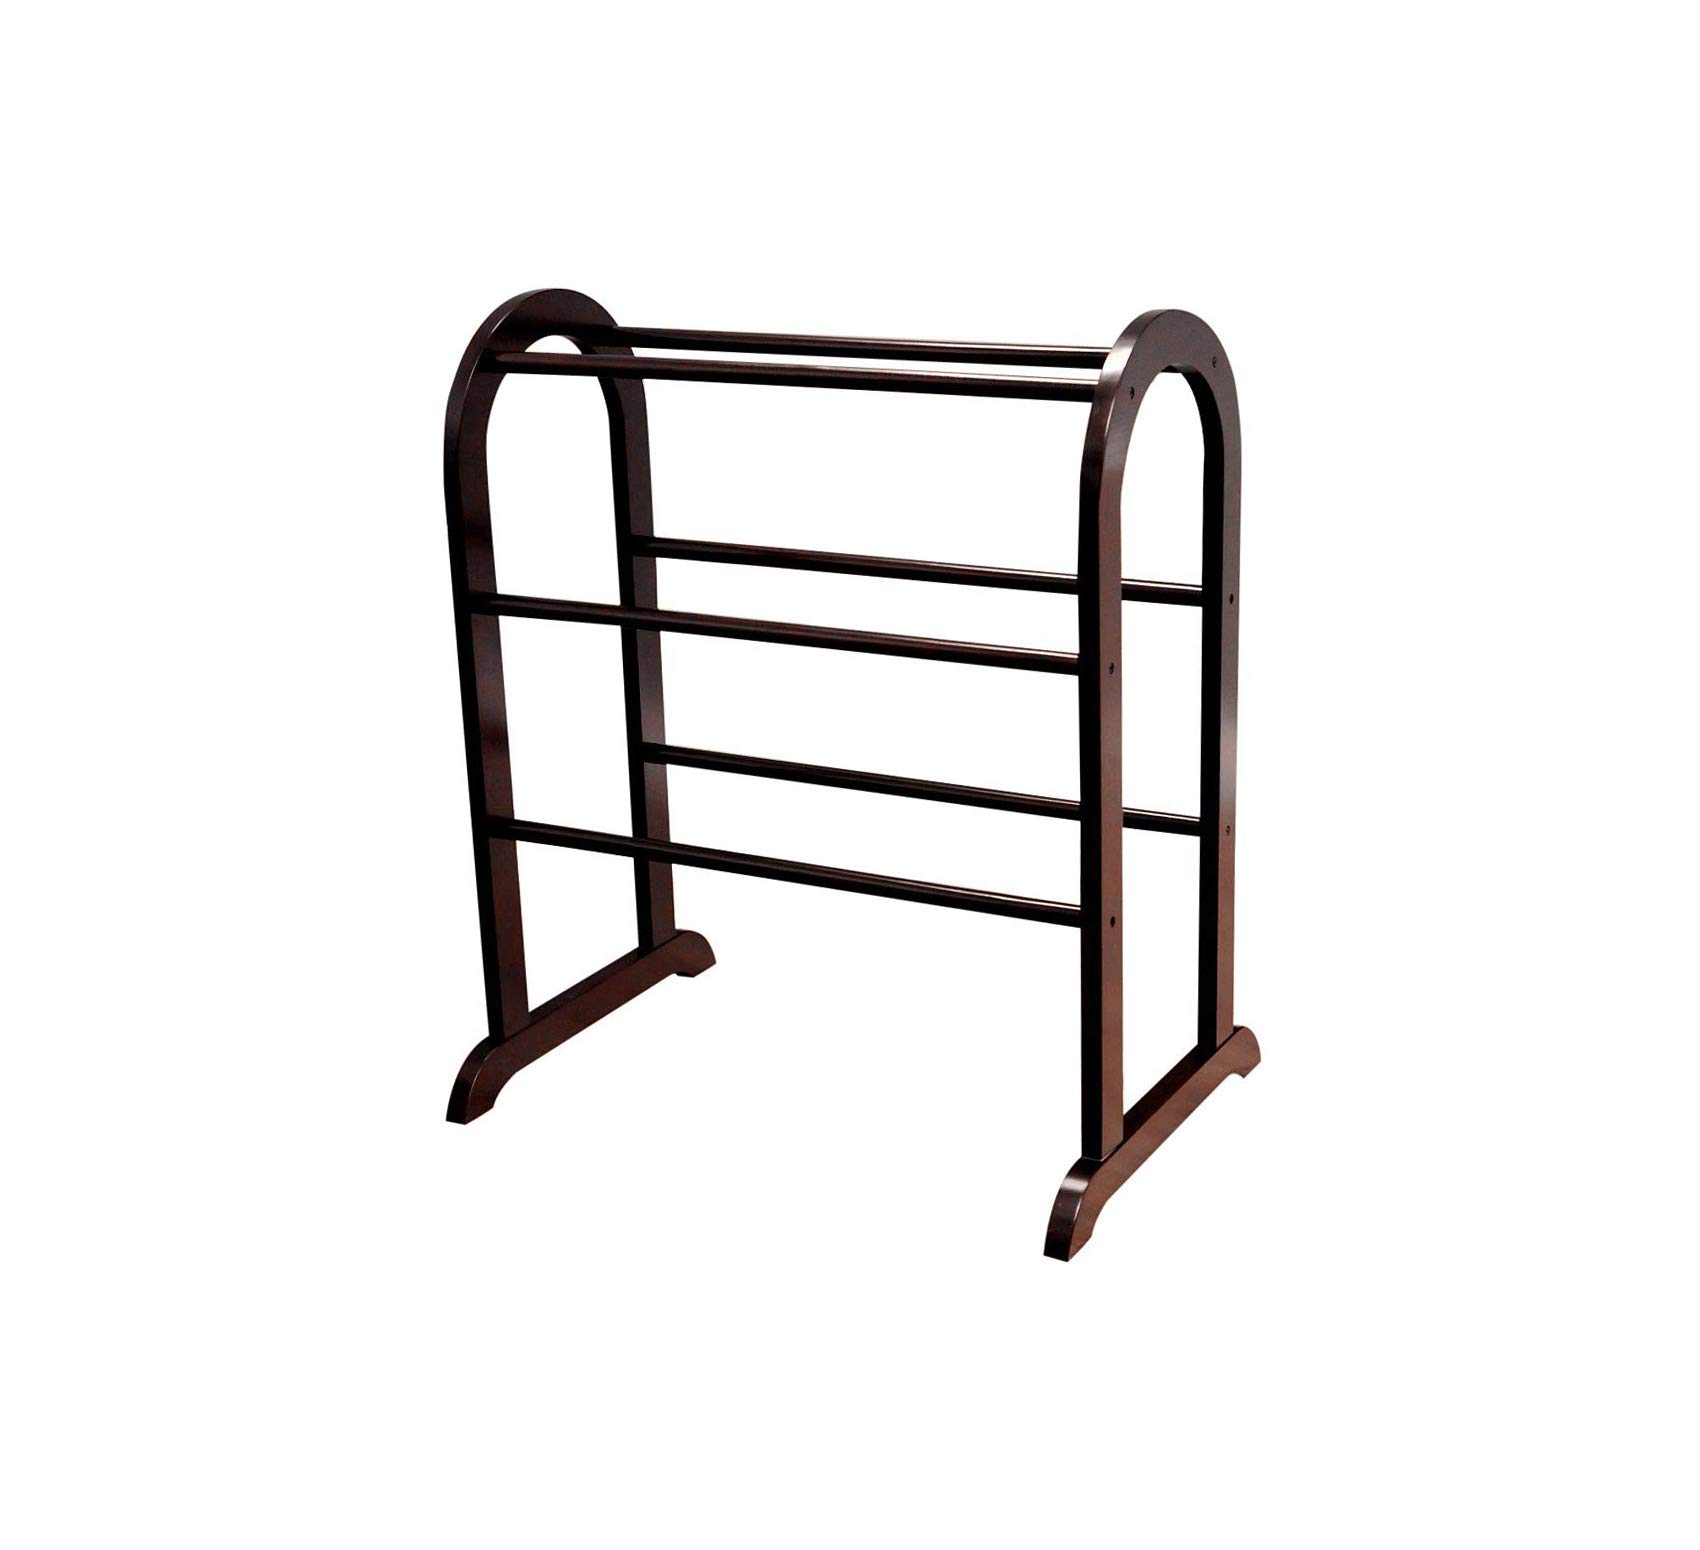 Wood & Style Furniture Quilt Rack Home Office Commerial Heavy Duty Strong Décor